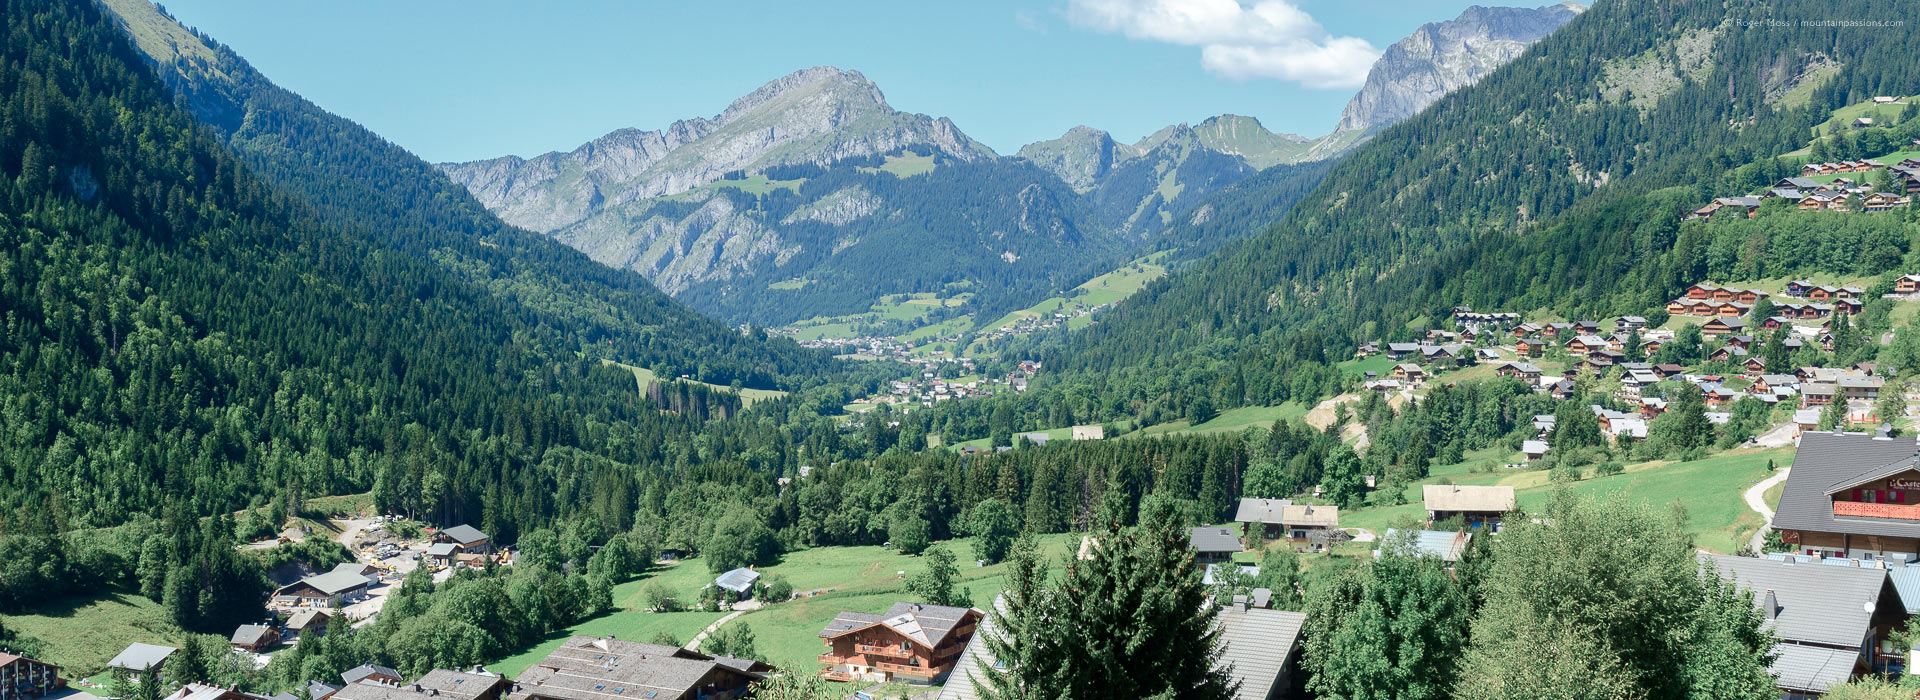 Wide overview of Chatel village and valley with mountains